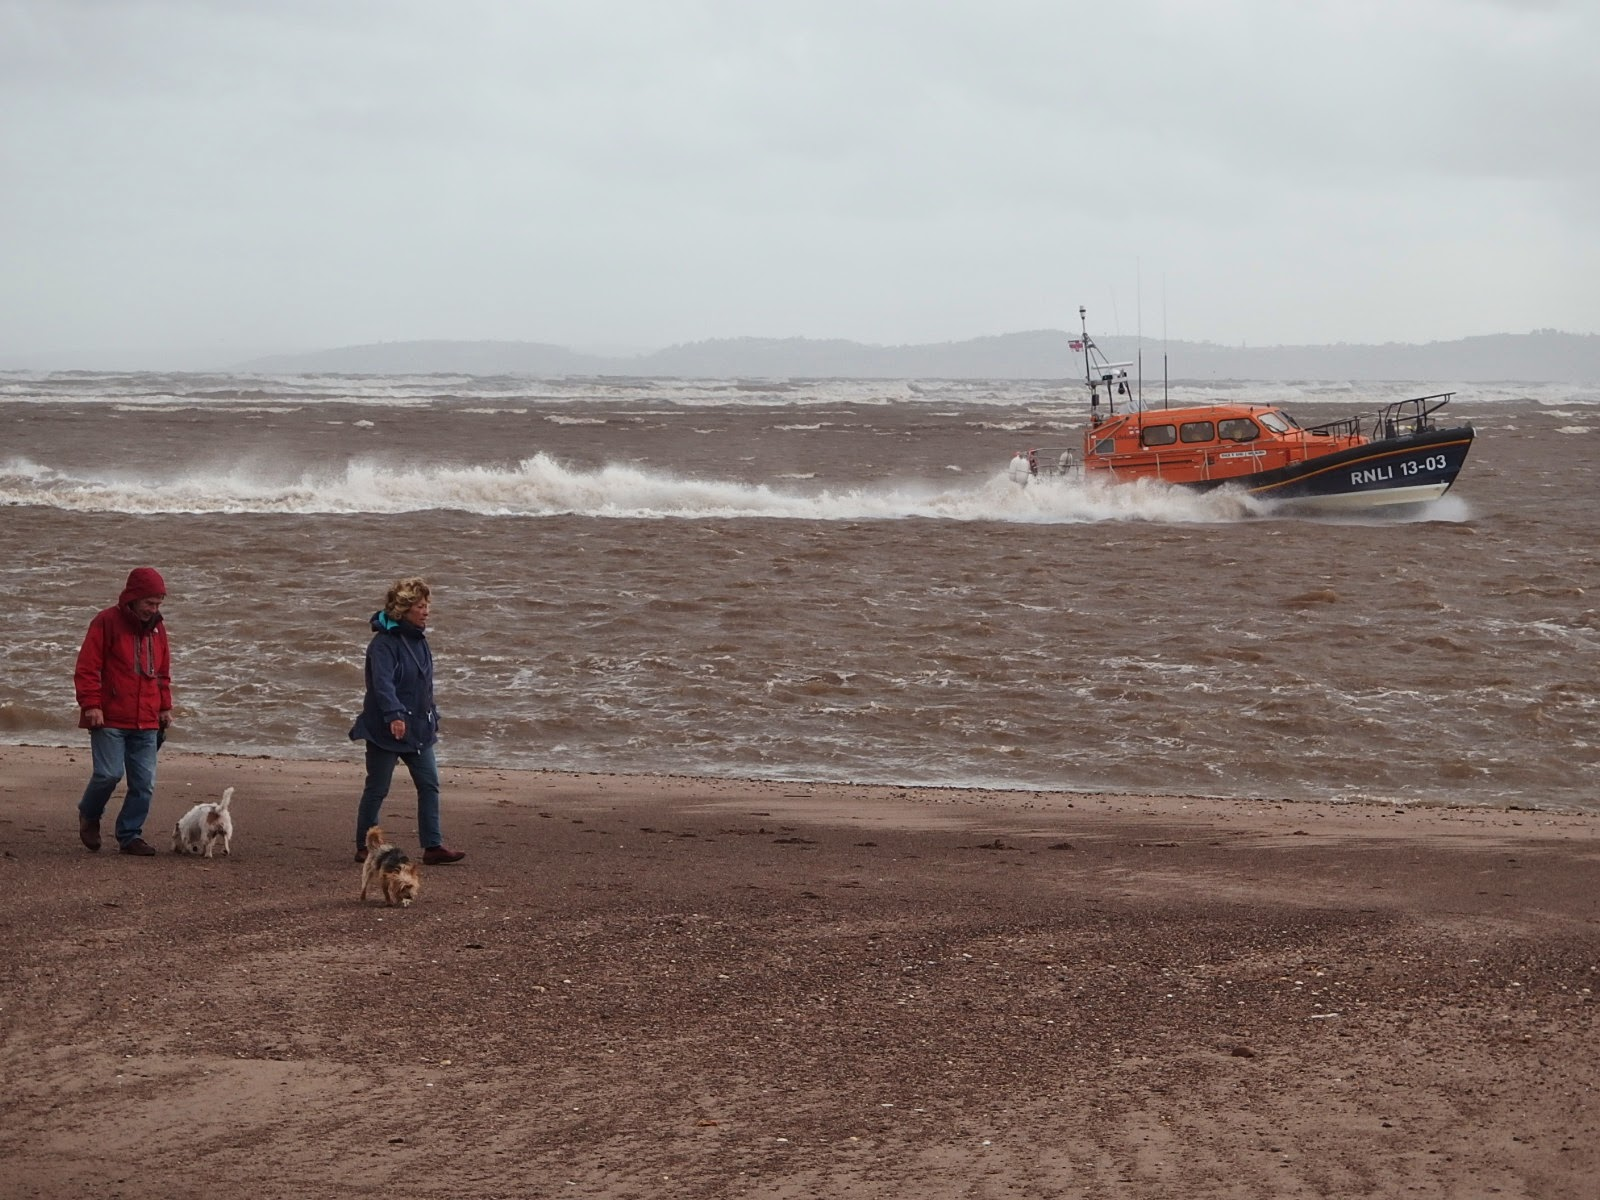 Walking the dog on Exmouth beach with the local lifeboat on manoevres in the background